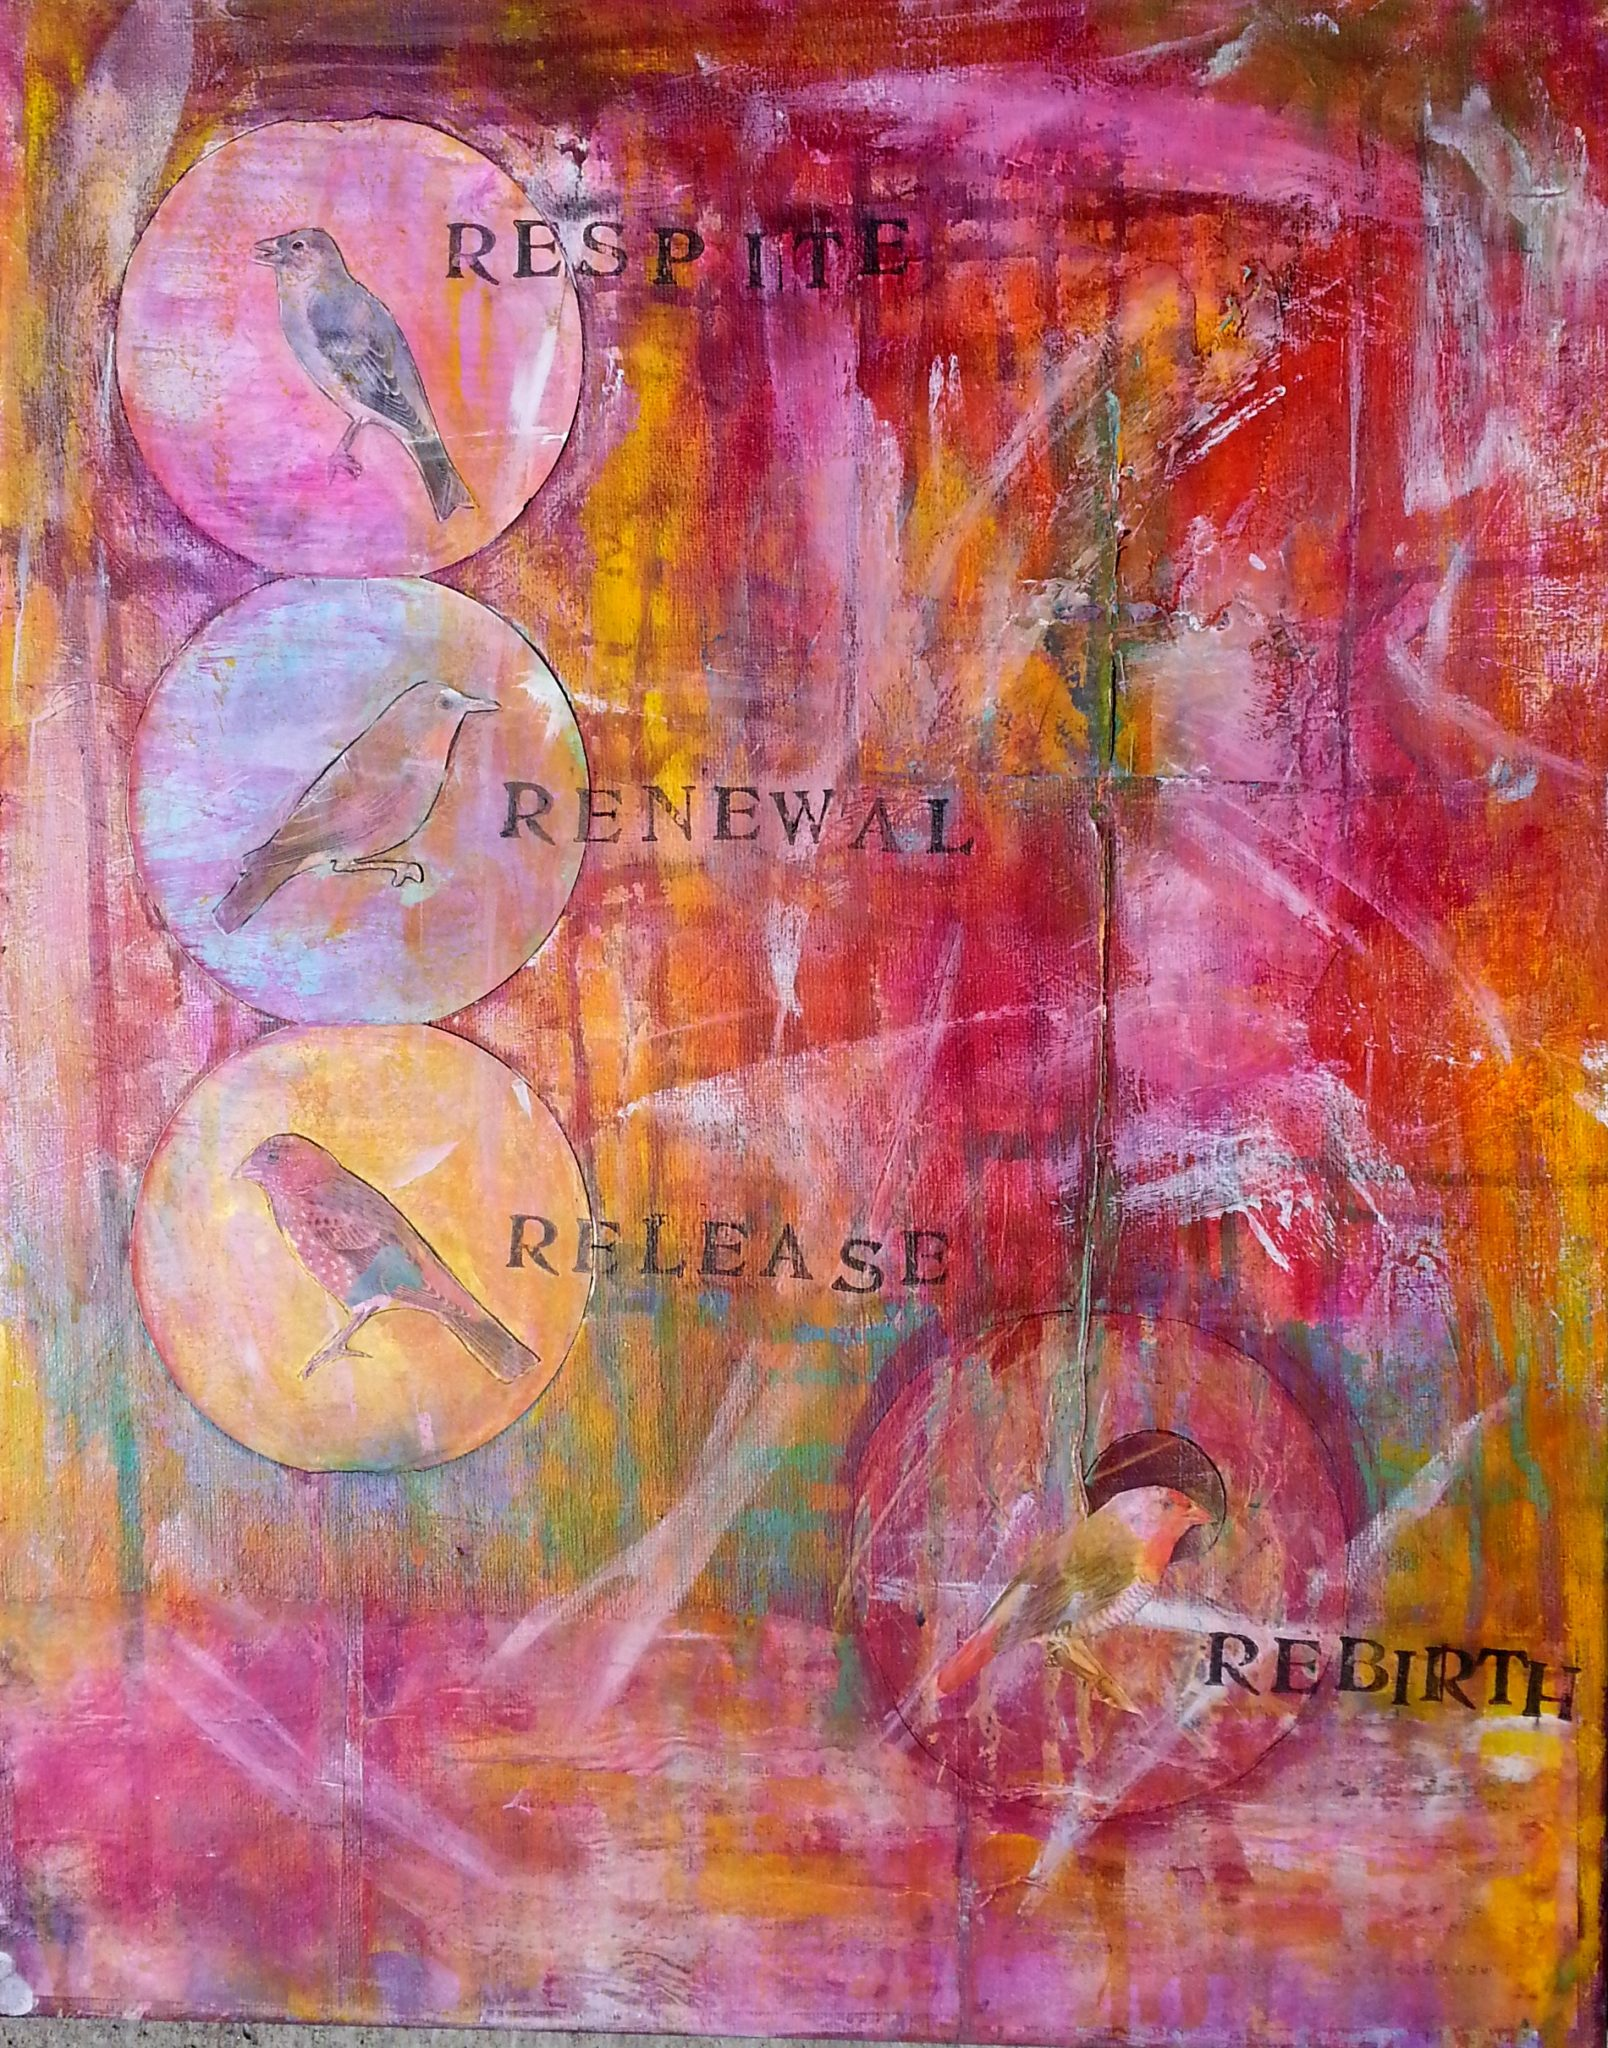 Rebirth, mixed media acrylic by Courtney Putnam